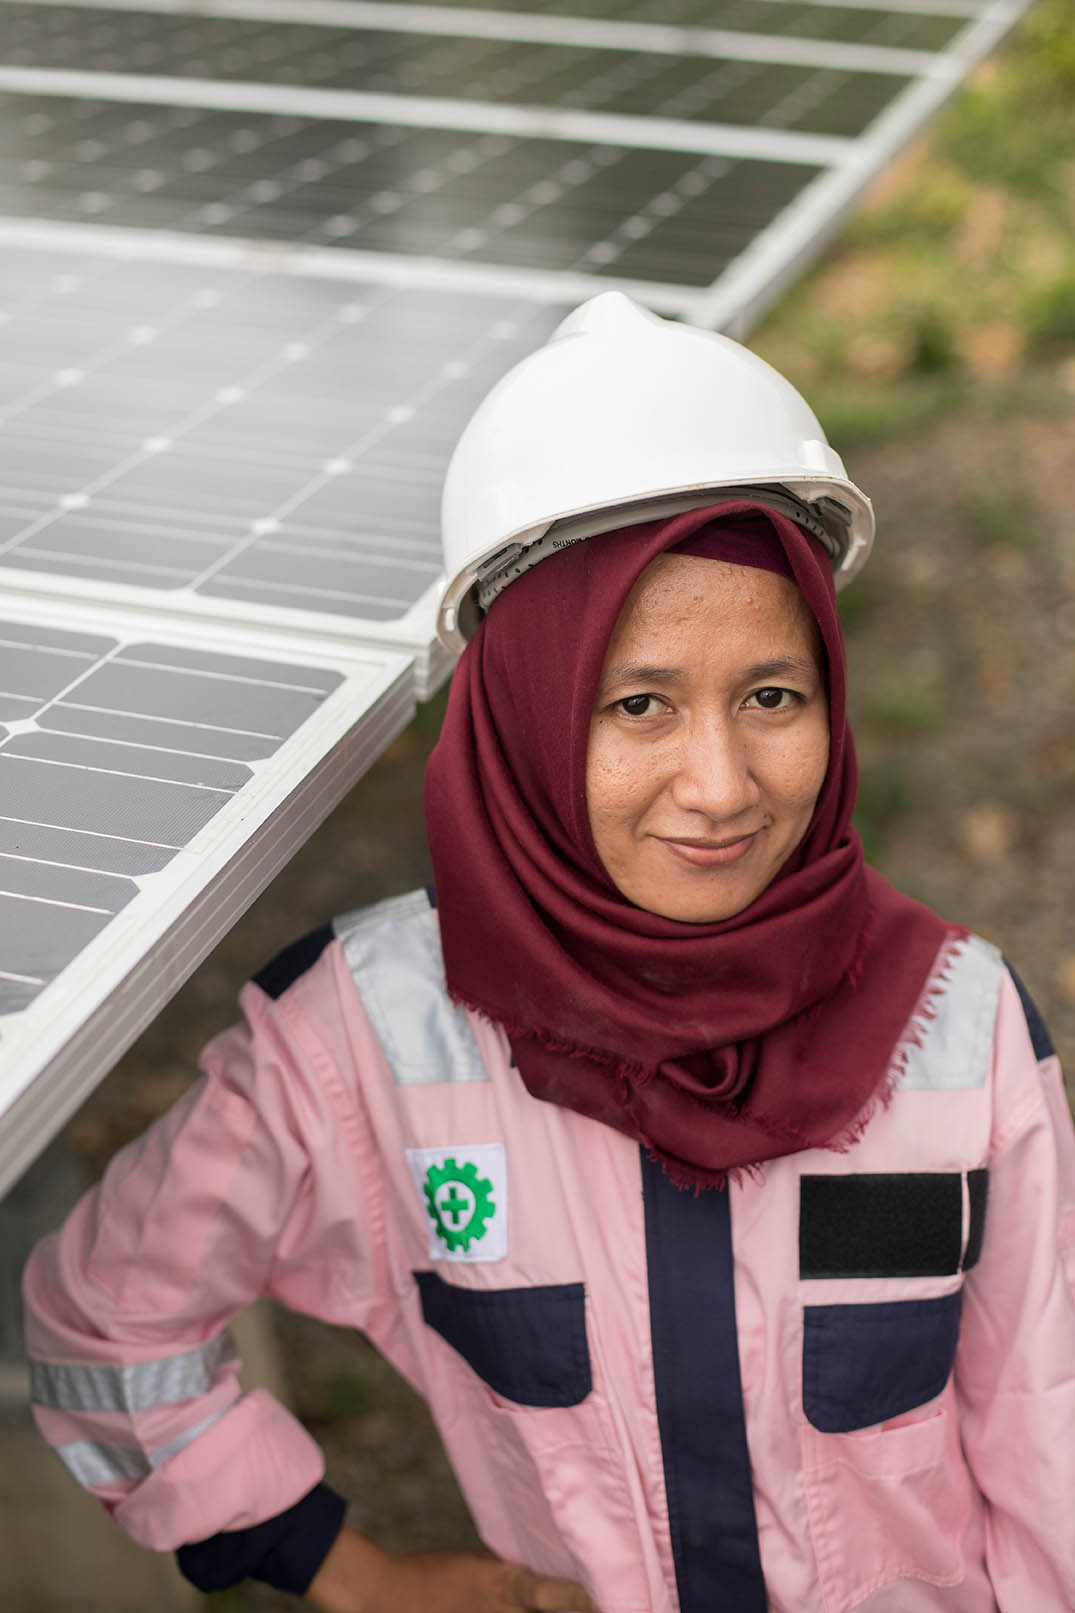 Junior electrical technician, Verawati (23), inspects and maintains solar panels on Karampuang Island, Indonesia.